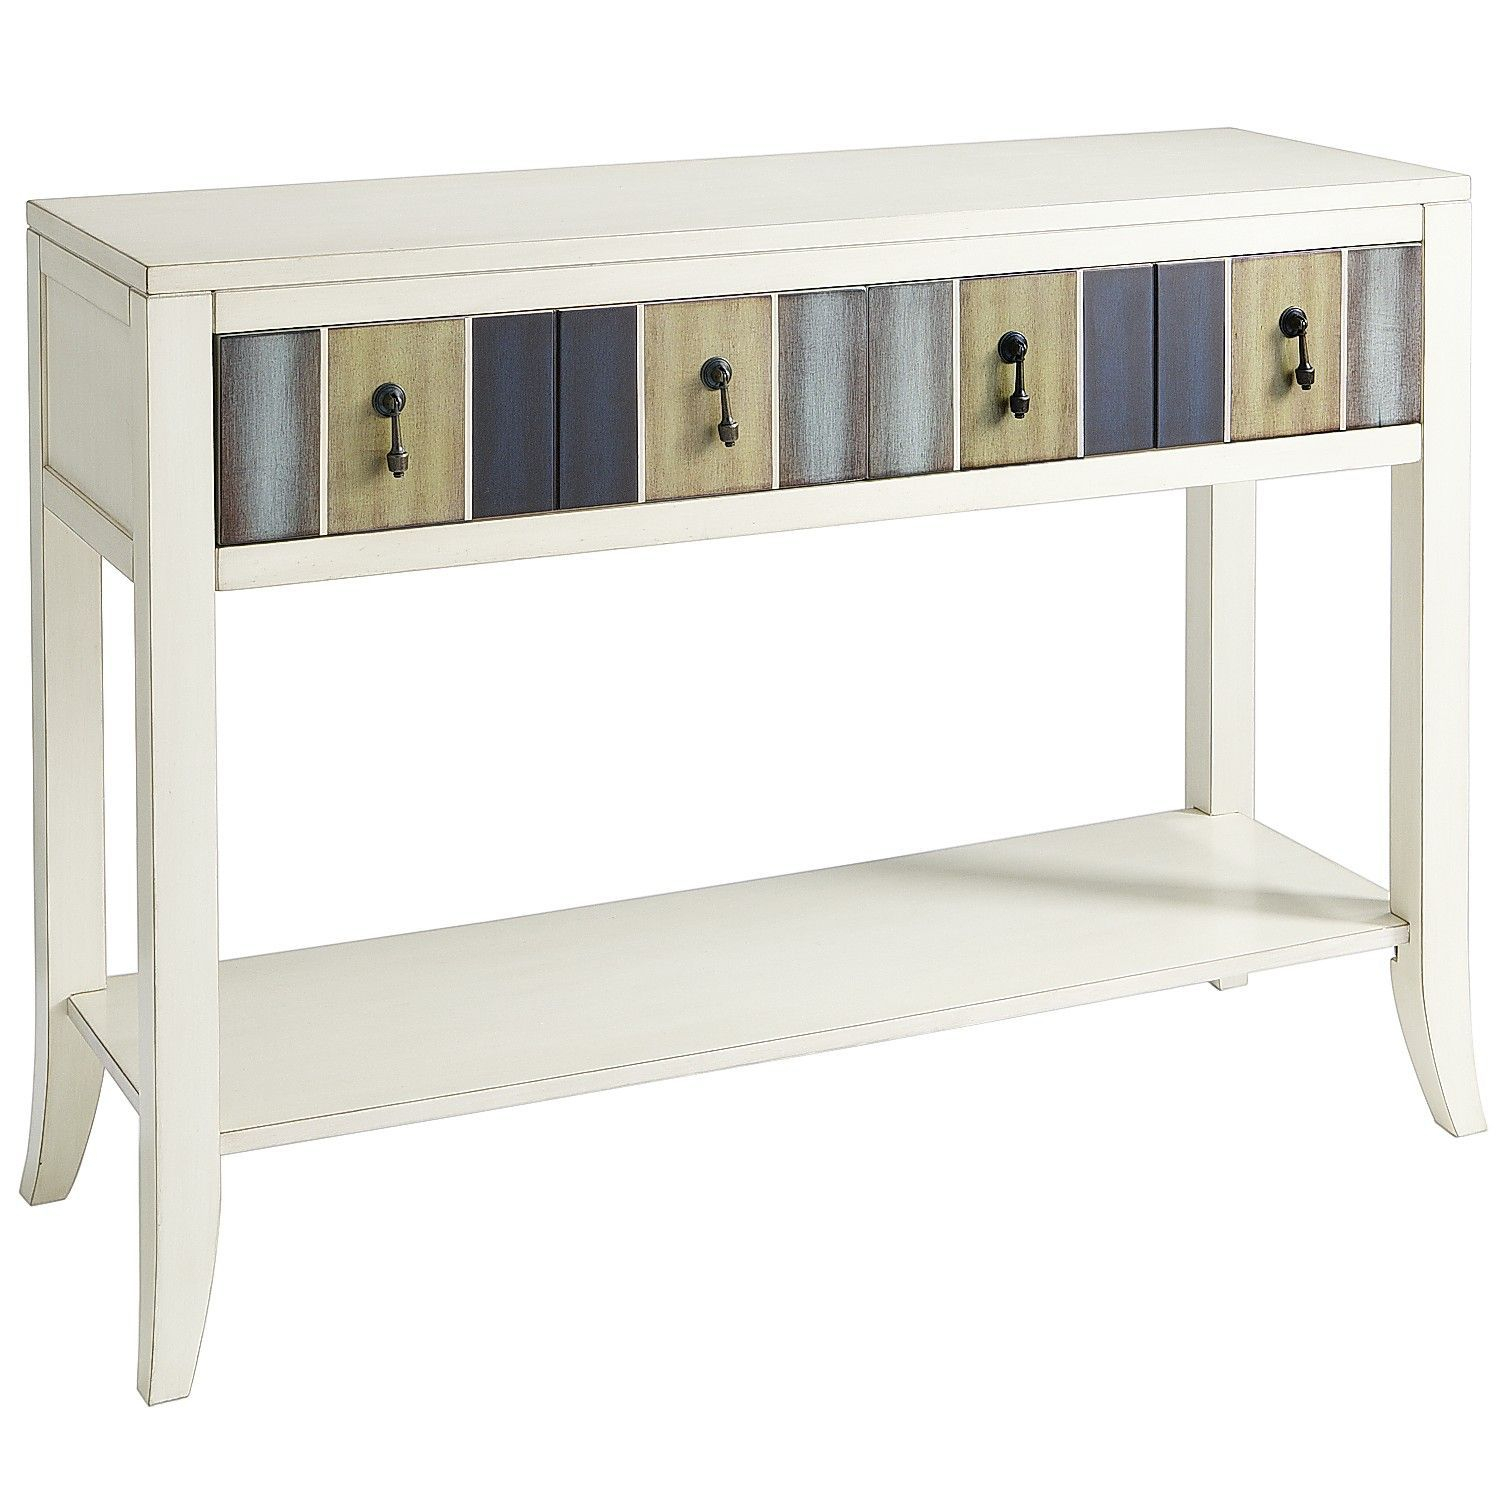 Truett Console Table   Console Tables   Pinterest   Console Tables Regarding Parsons Grey Solid Surface Top & Dark Steel Base 48x16 Console Tables (View 10 of 30)